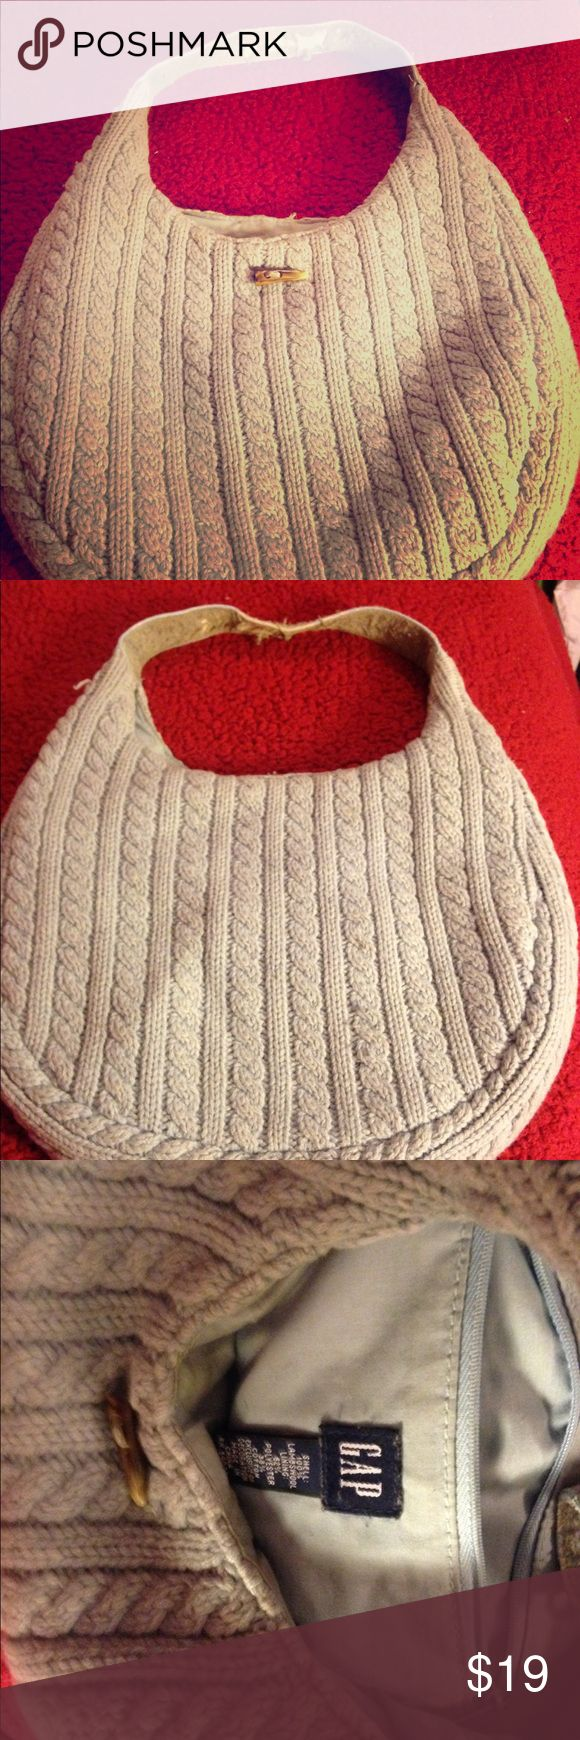 Gap sweater purse!!!👜 Baby blue Gap purse!!! (100% lambs wool lining 62% polyester 38% cotton) wear & tear of strap shown in photos. Lining has stains. Will let you all know if I'm able to remove the stains. Other than those 2 things there's nothing wrong with the bag. No zippers. GAP Bags Shoulder Bags